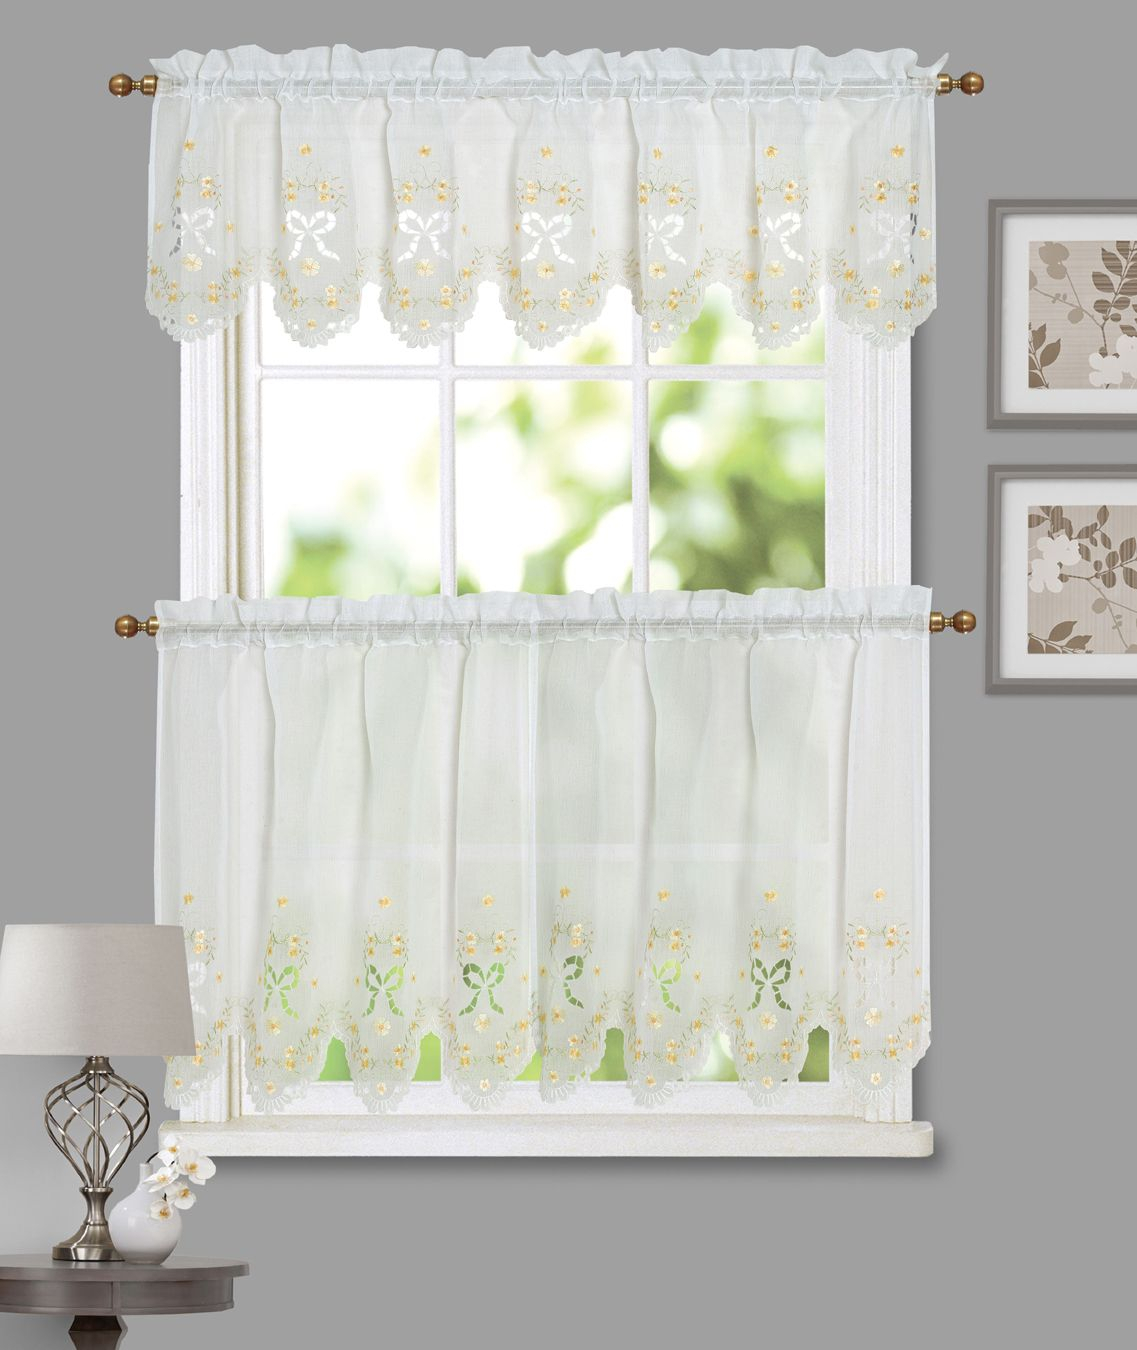 Blossoms And Bows Semi Sheer Faux Linen – Kitchen Curtains Pertaining To Semi Sheer Rod Pocket Kitchen Curtain Valance And Tiers Sets (View 3 of 20)